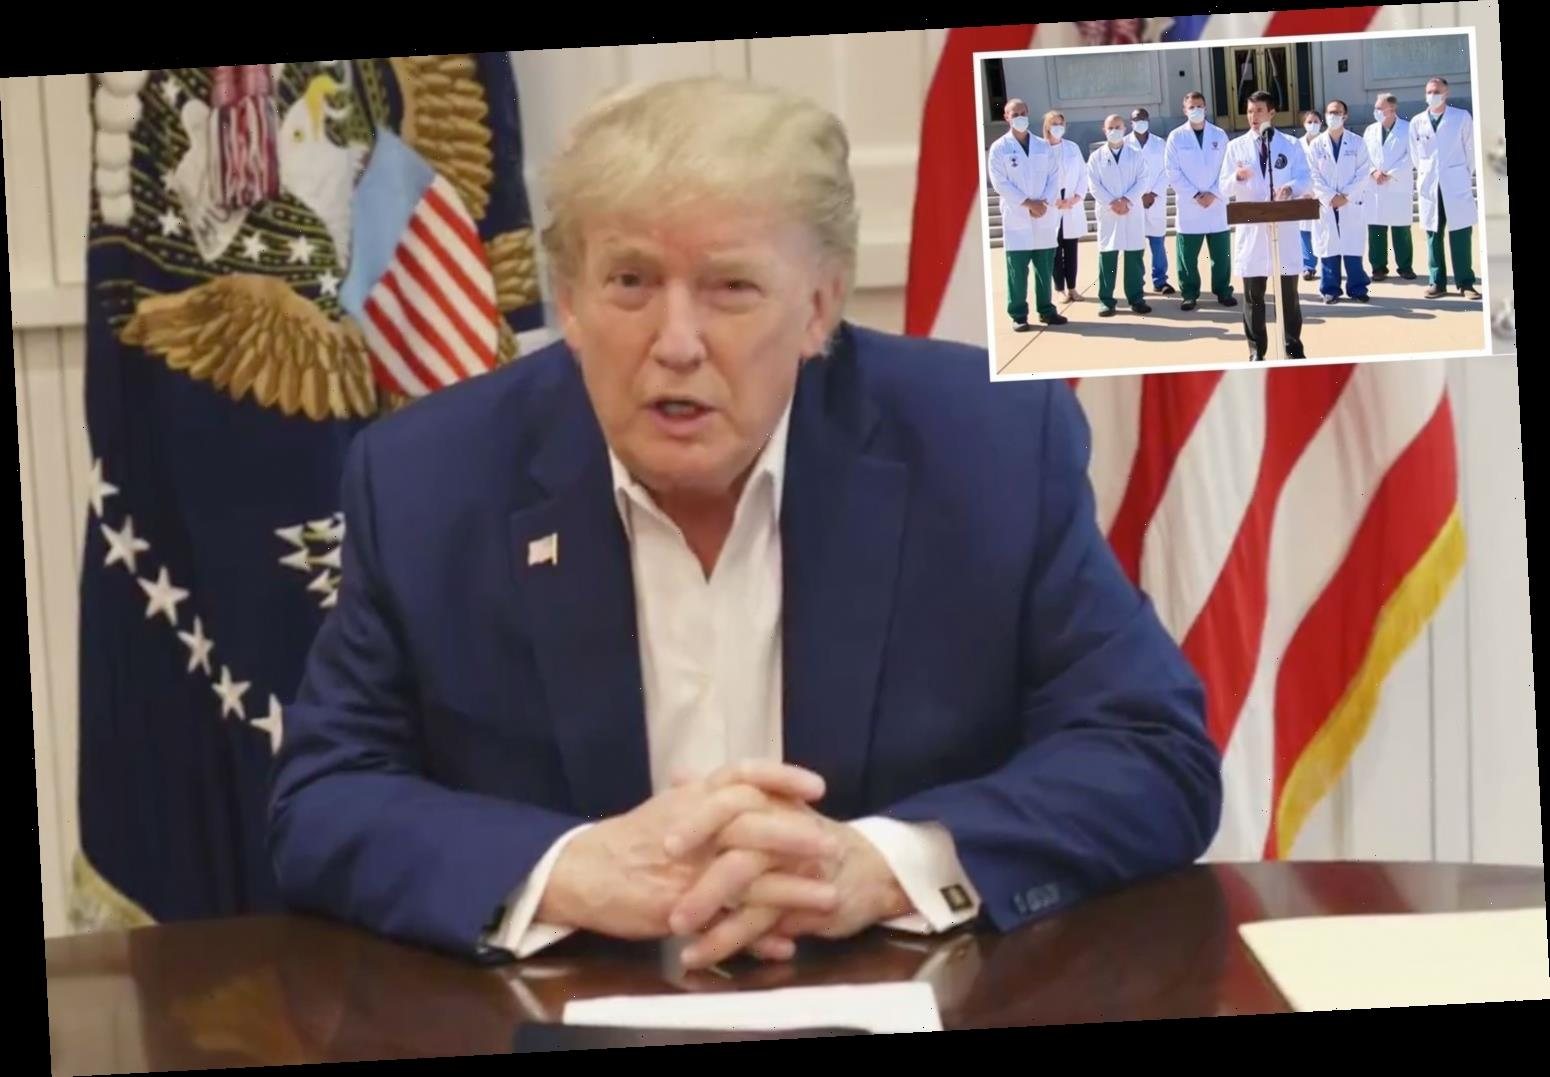 Trump posts video from hospital warning 'next few days will be real test' after day of chaos following Covid diagnosis